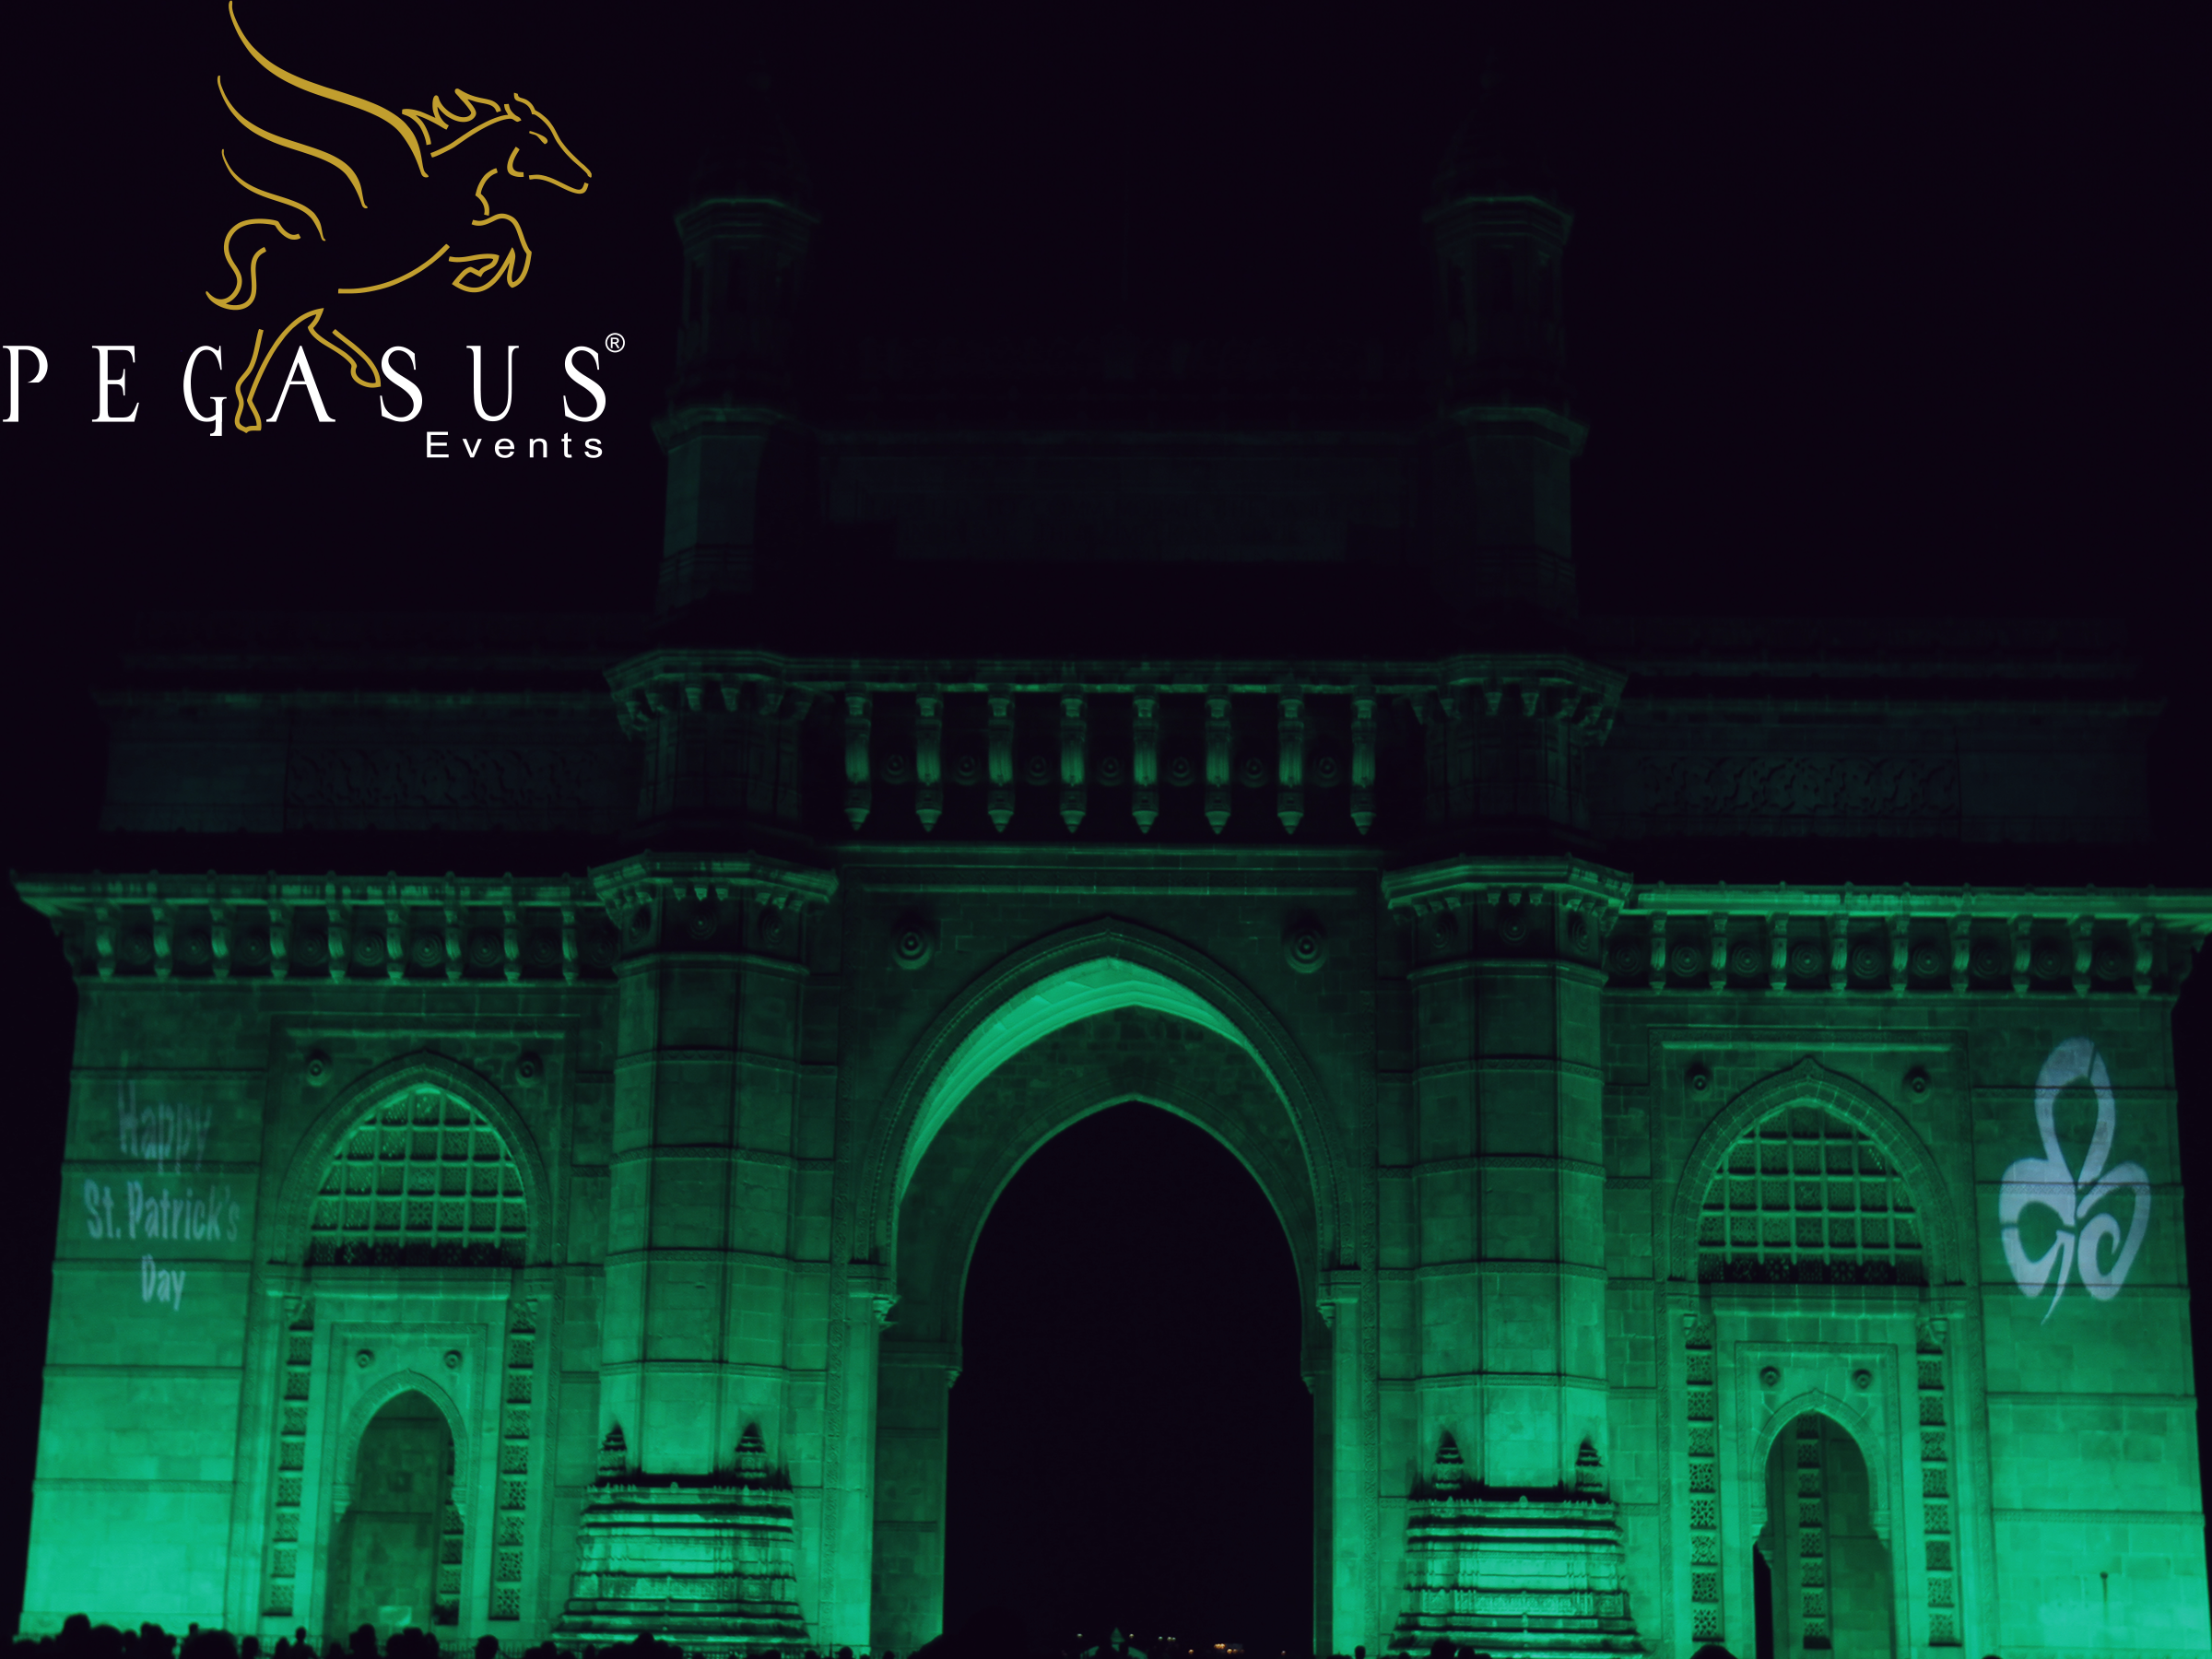 Gateway of India Illumination by Pegasus Events for St.Patricks Day